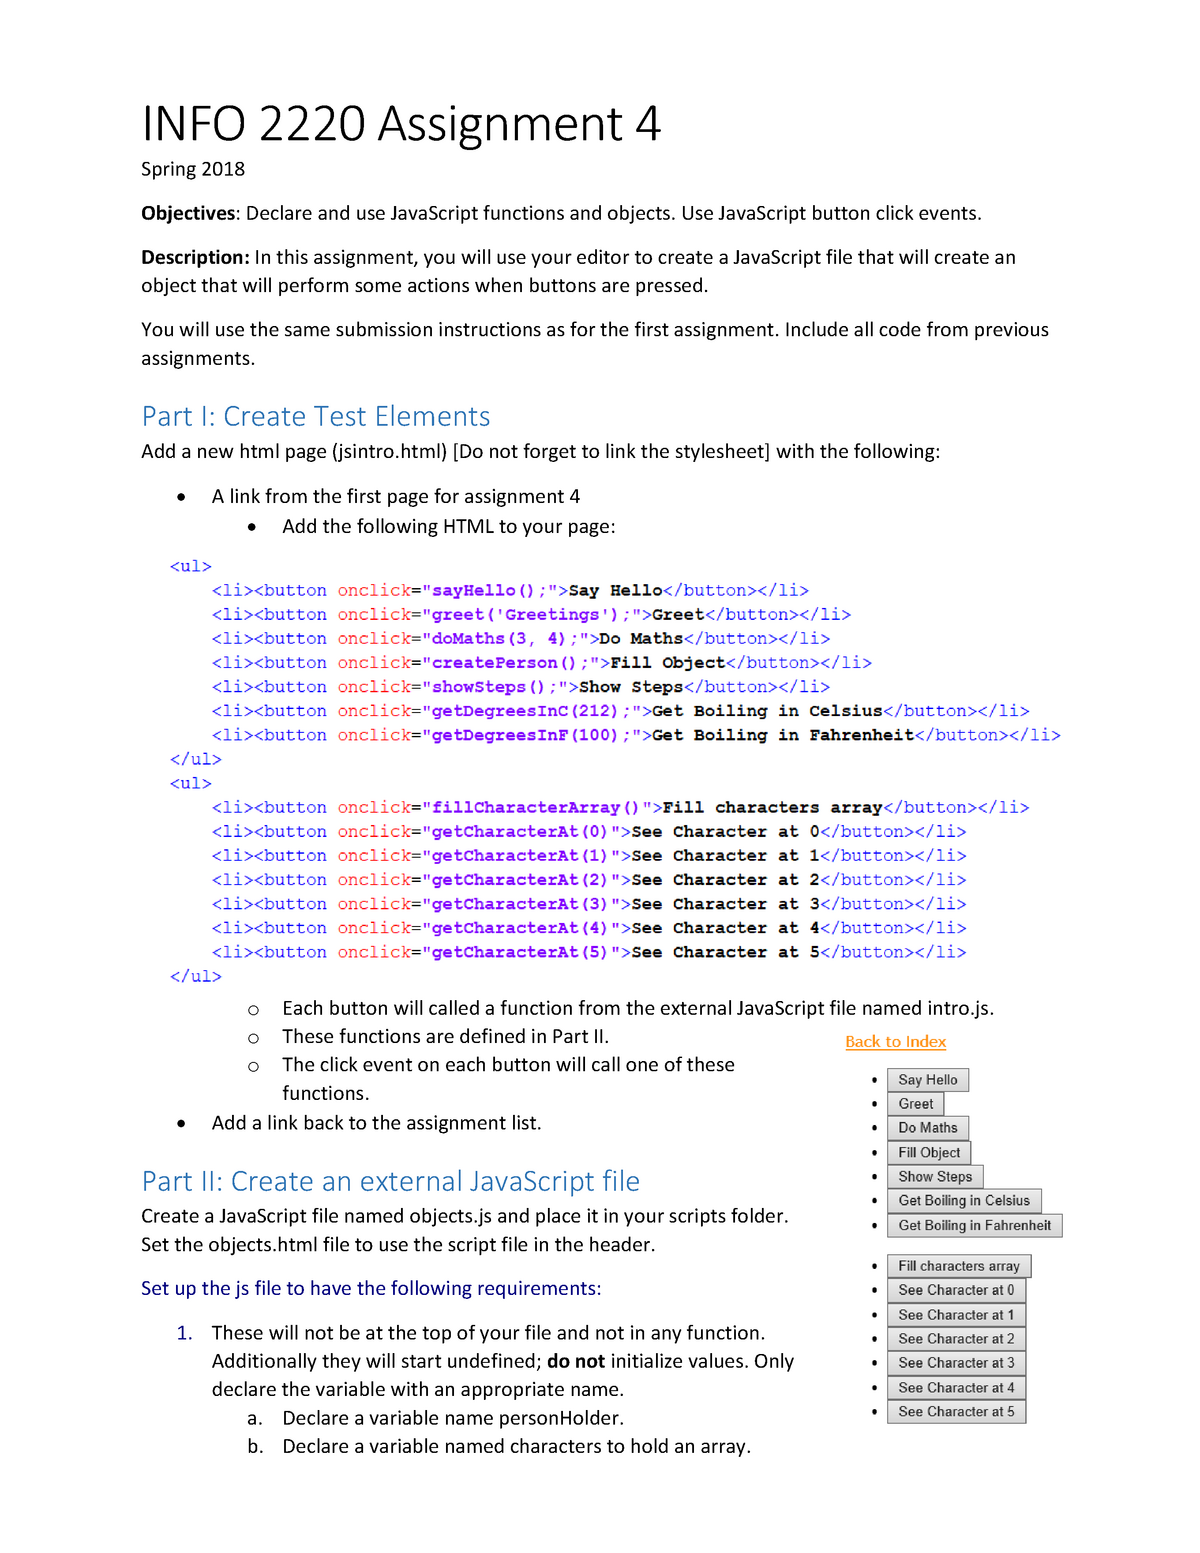 Assignment 4 - Lecture notes 4 - INFO 2220: Web Development